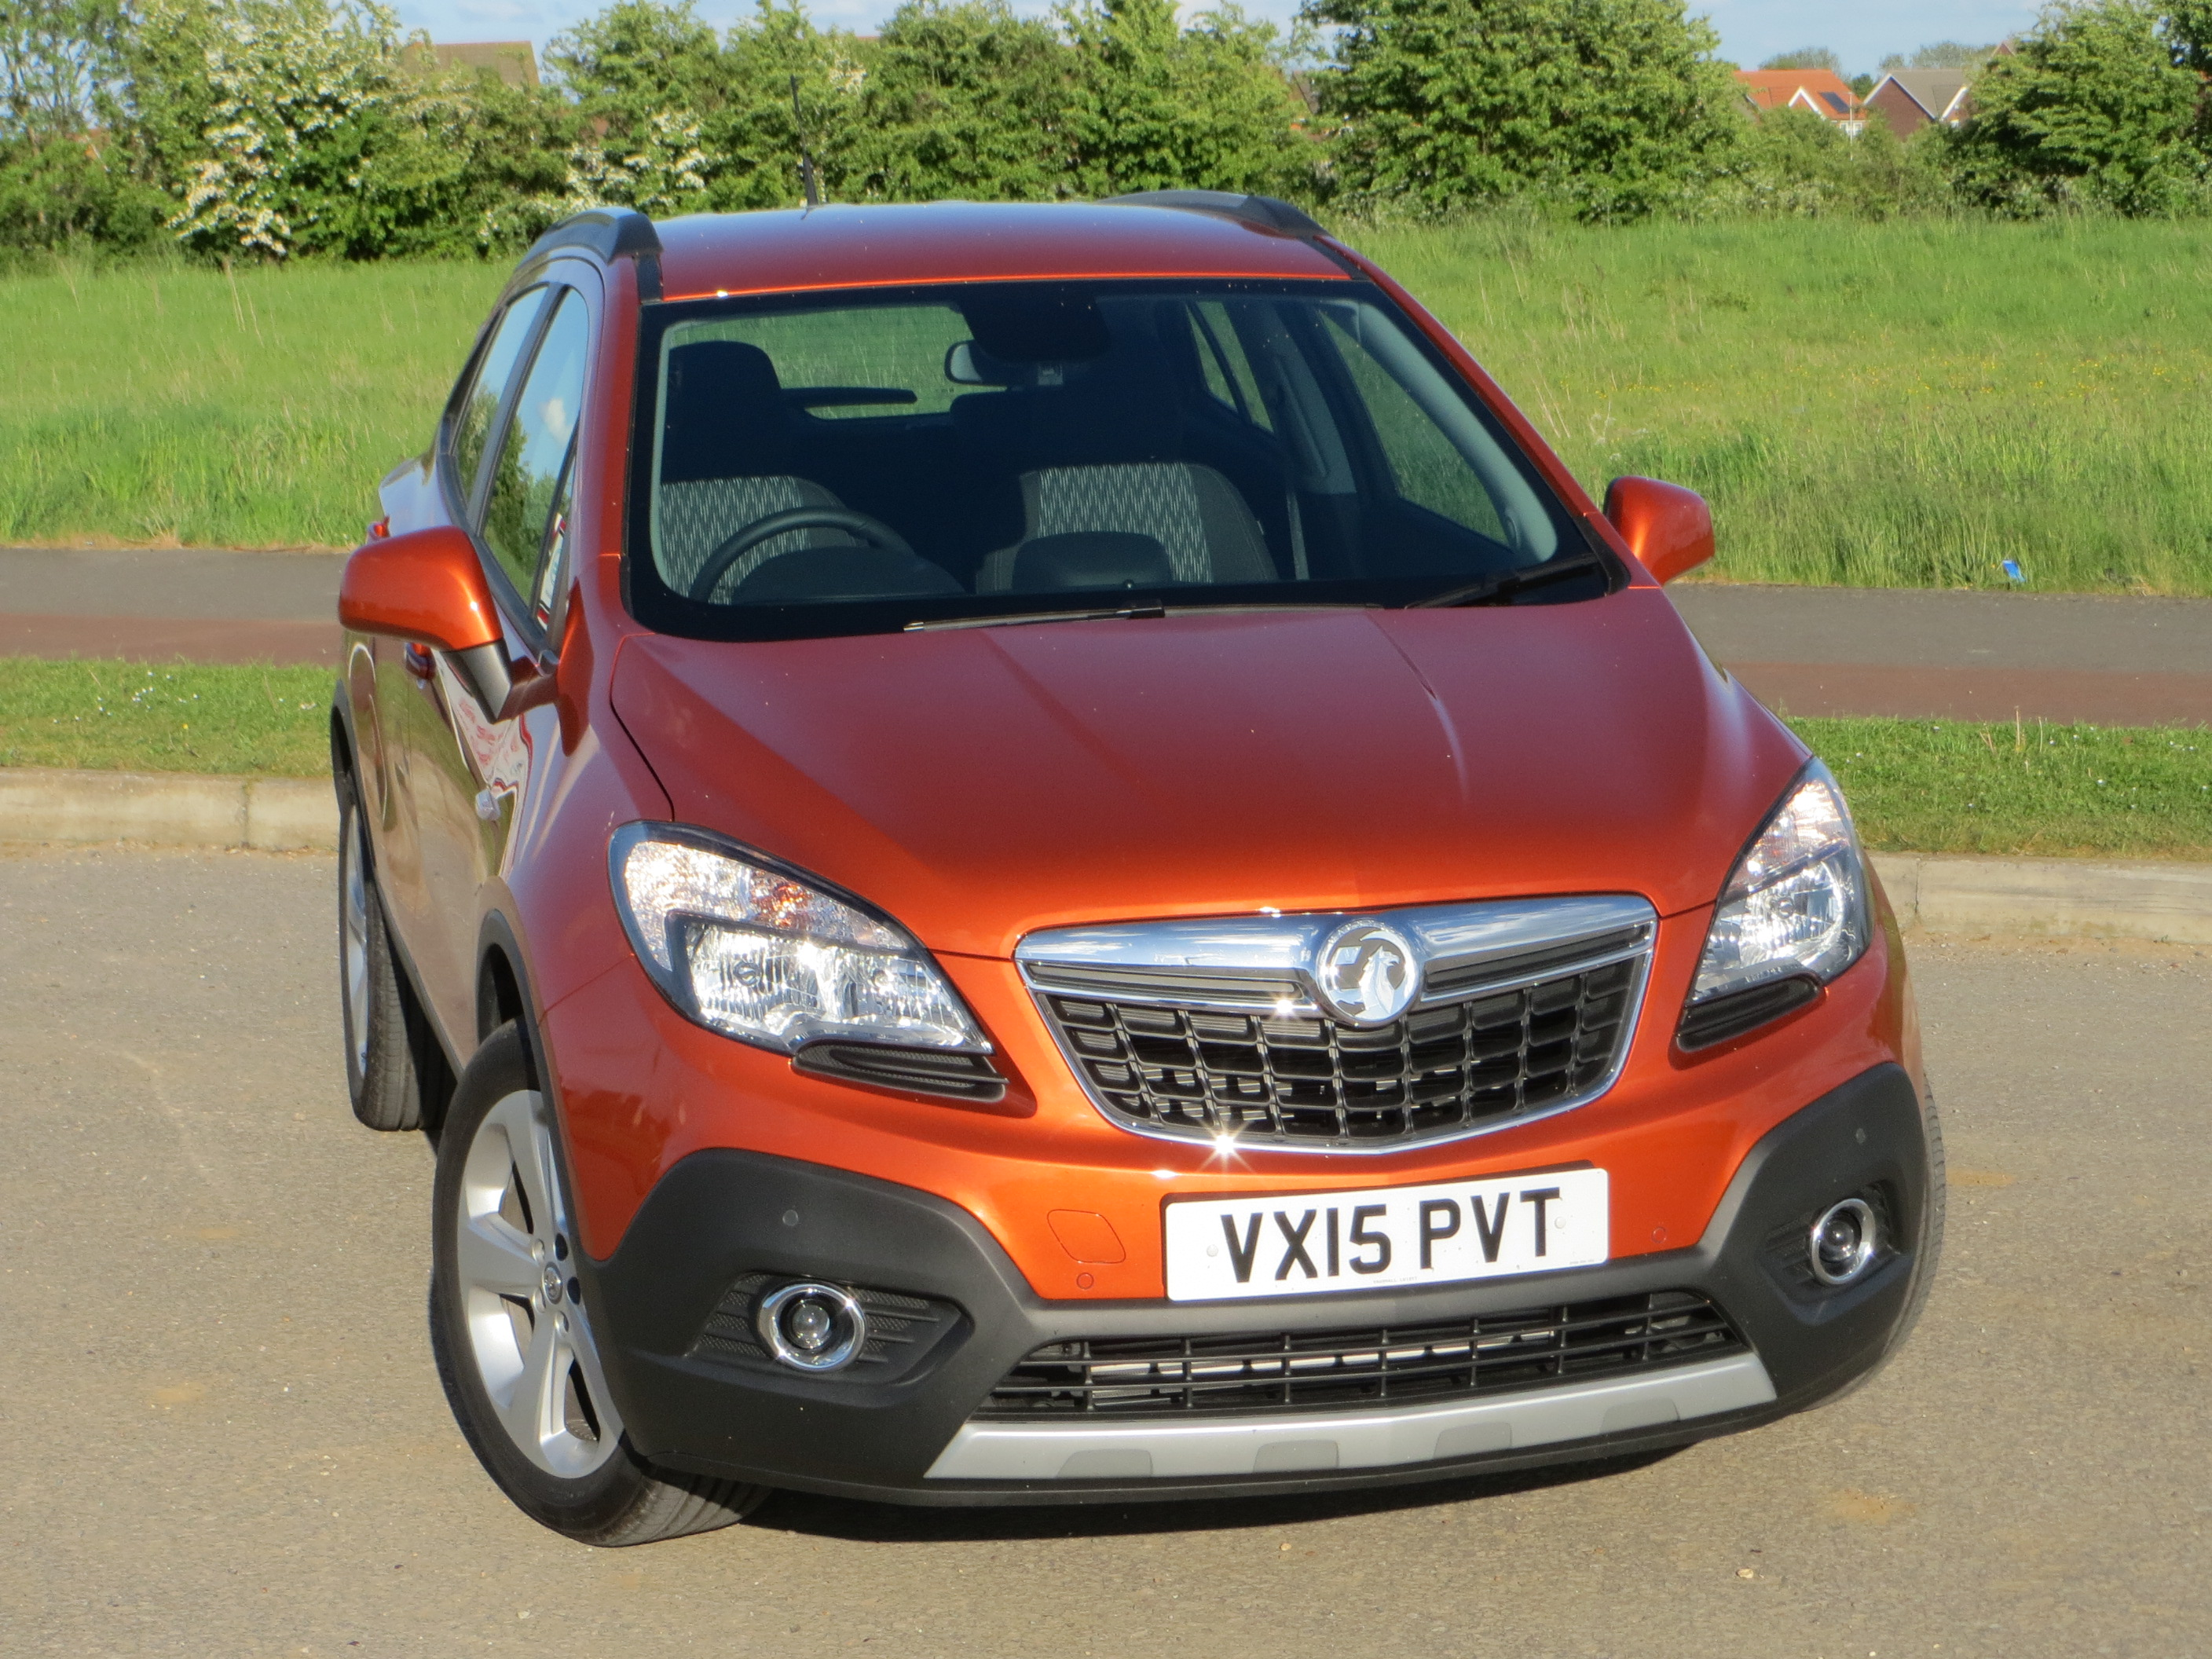 Vauxhall Mokka Tech Line 1.4 turbo 140PS Start/Stop 4x4 road test report and review